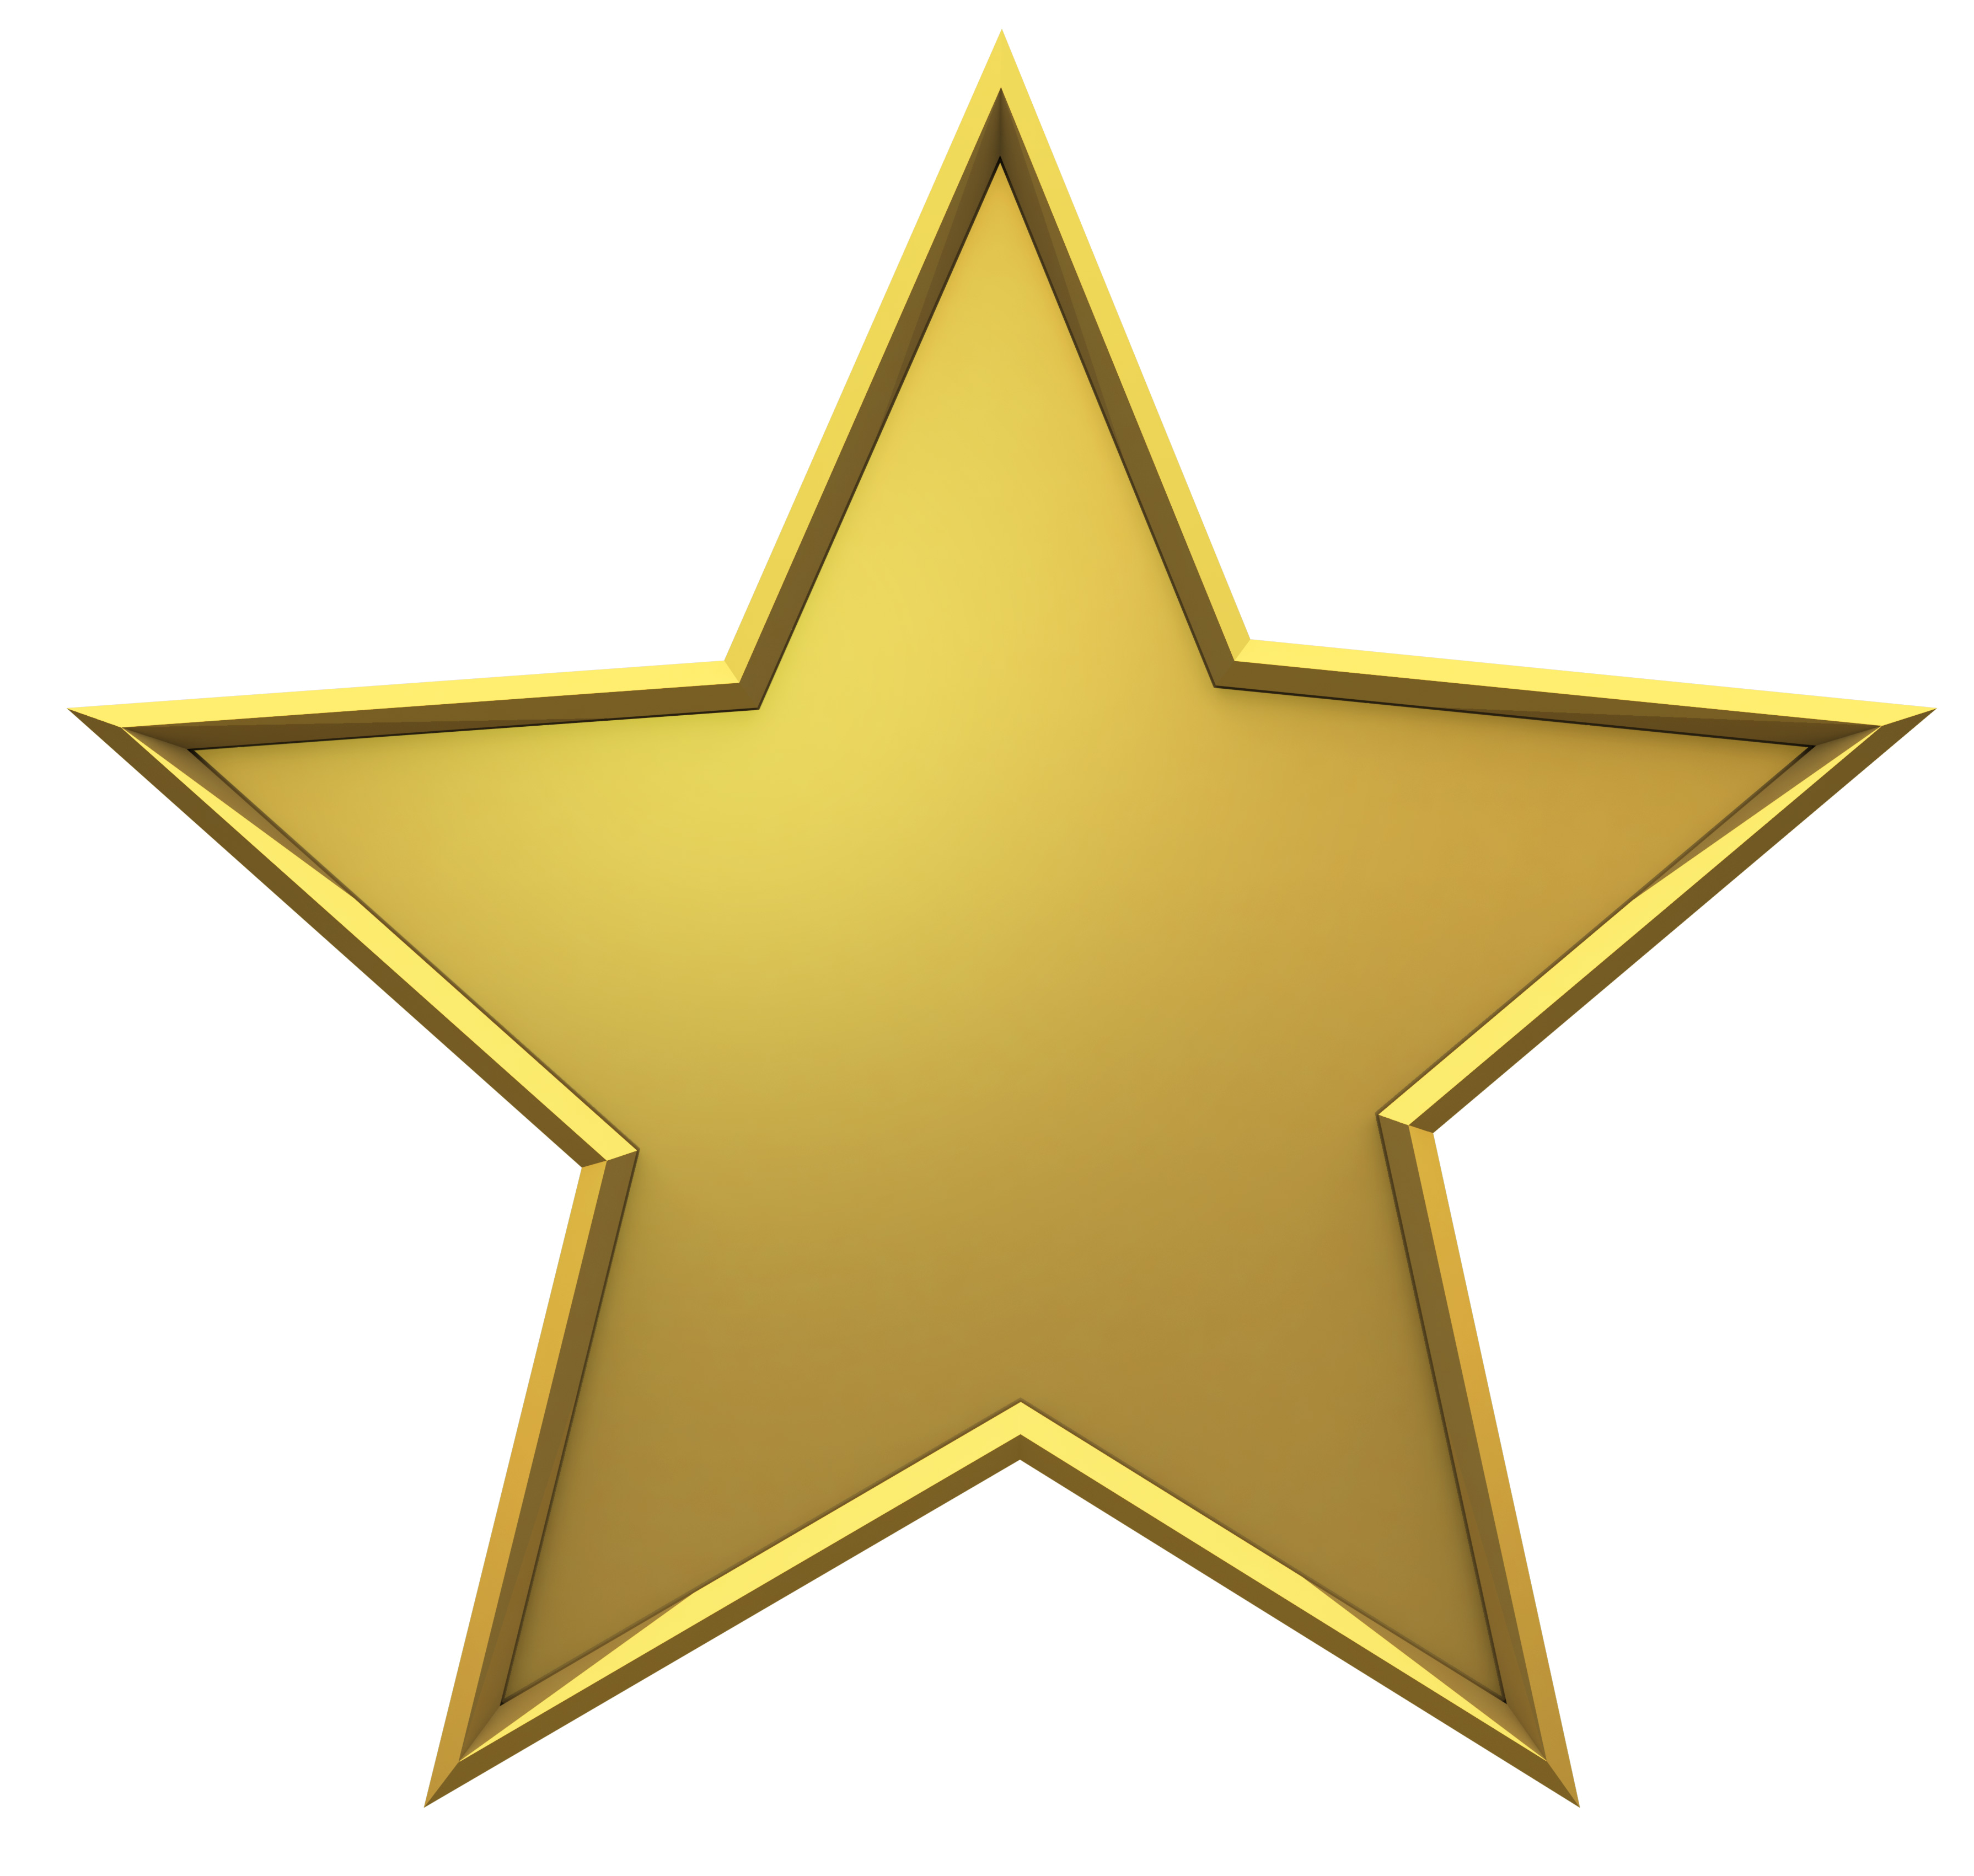 Gold Star PNG Image Gold stars, Star template, Stars